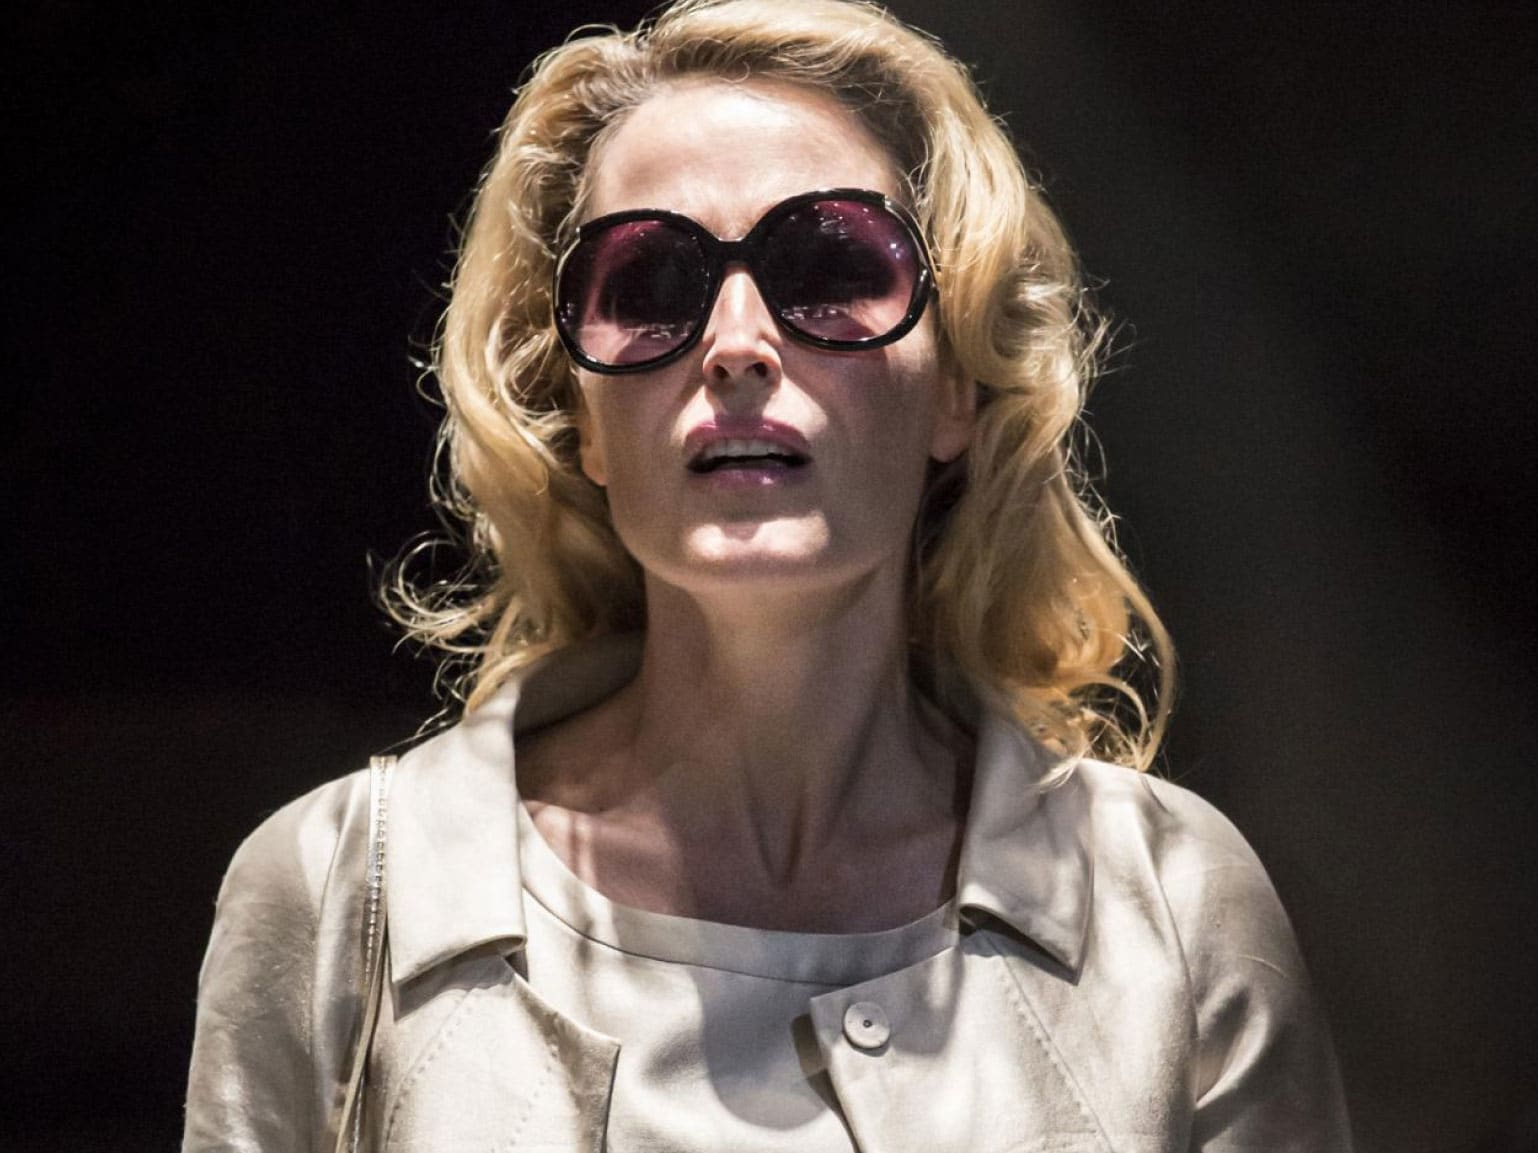 A woman with a spotlight on her wearing sunglasses.